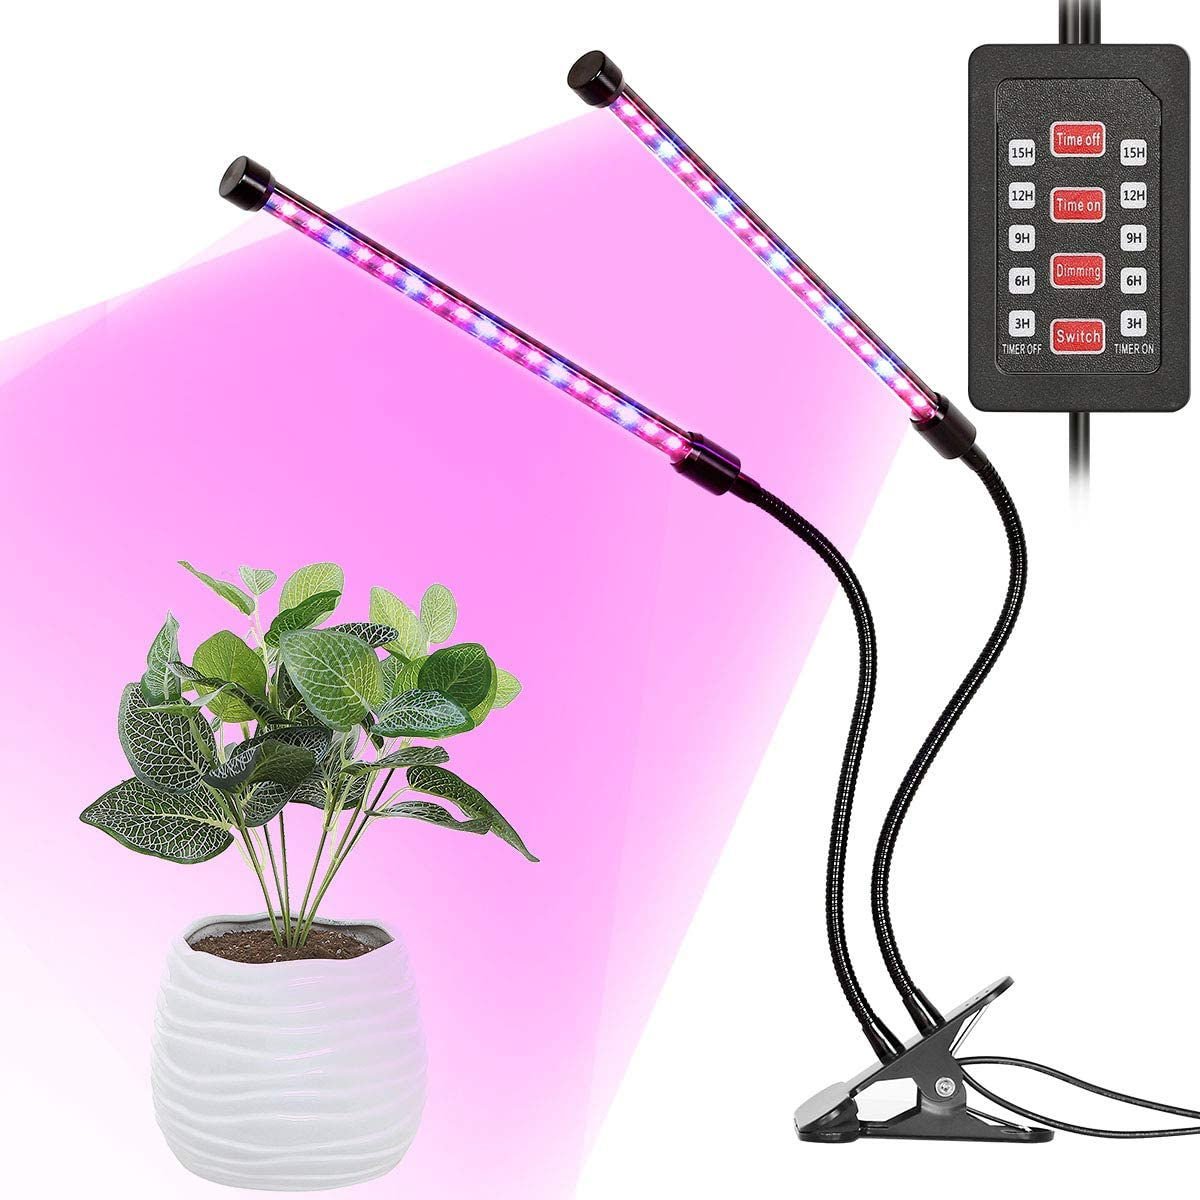 INKERSCOOP LED Grow Light, Upgraded Grow Lamp Auto ON Off 18W 36 LED Dual Head 3-6-9-12-15 Timer 5 Dimmable Levels Plant Growing Lights 3 Light Spectrum Switching Blue Red RED Blue Light